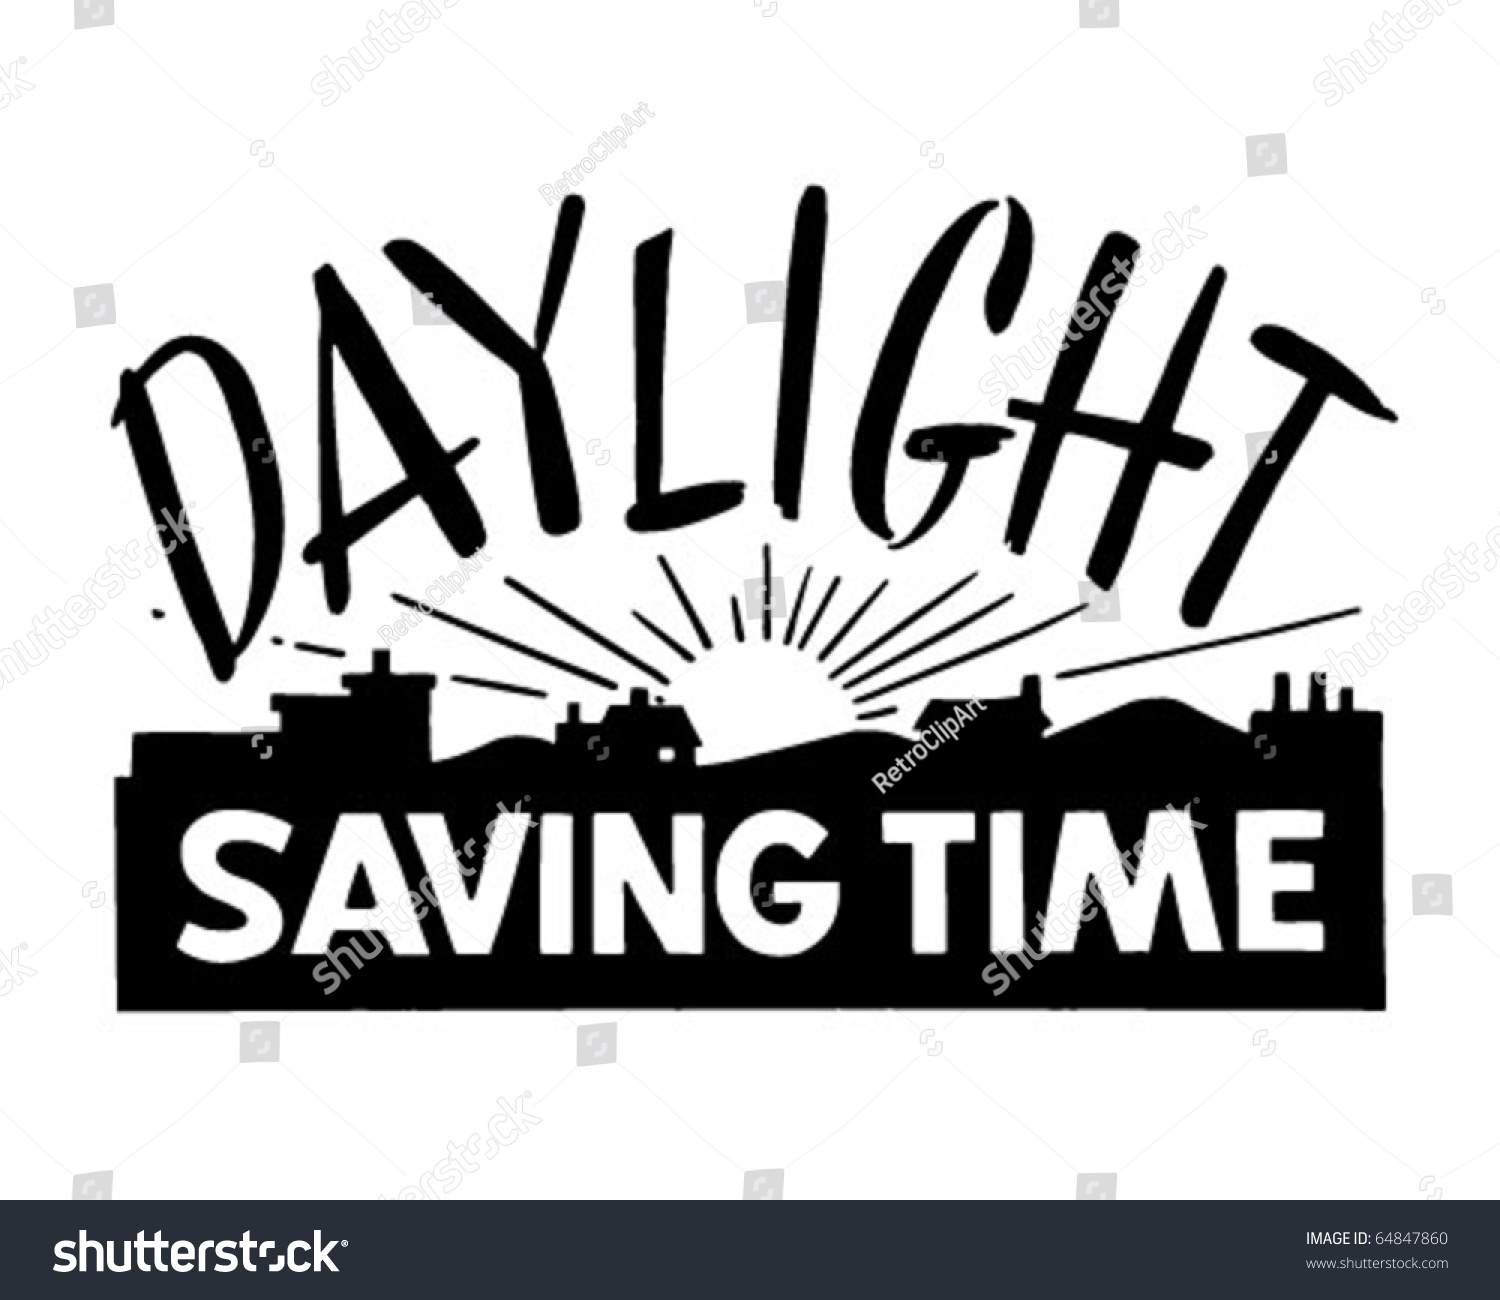 daylight saving time ad banner retro stock vector 64847860 daylight saving time clip art 2018 daylight saving time clip art 2018